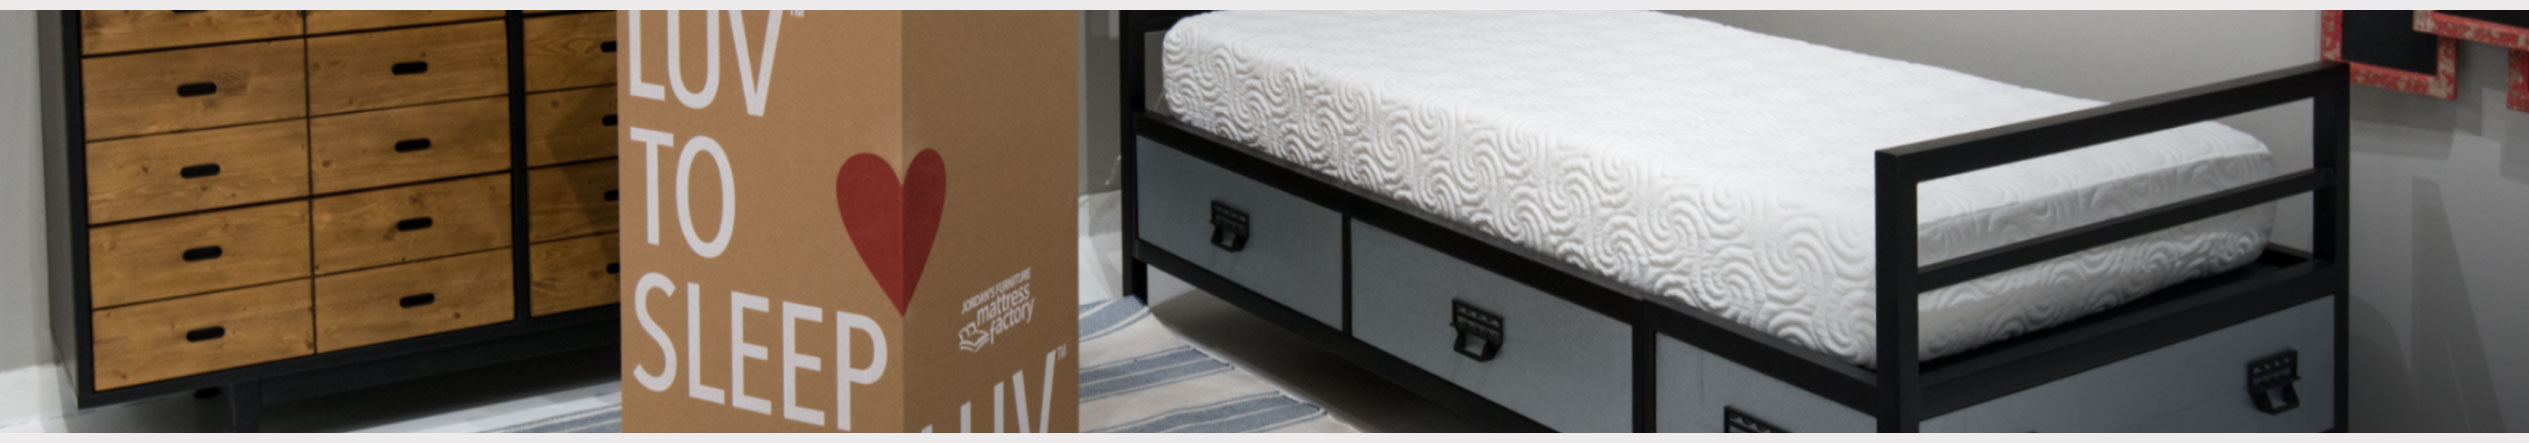 LUV To Sleep Bed in a Box at Jordan's Furniture stores in CT, MA, NH, and RI